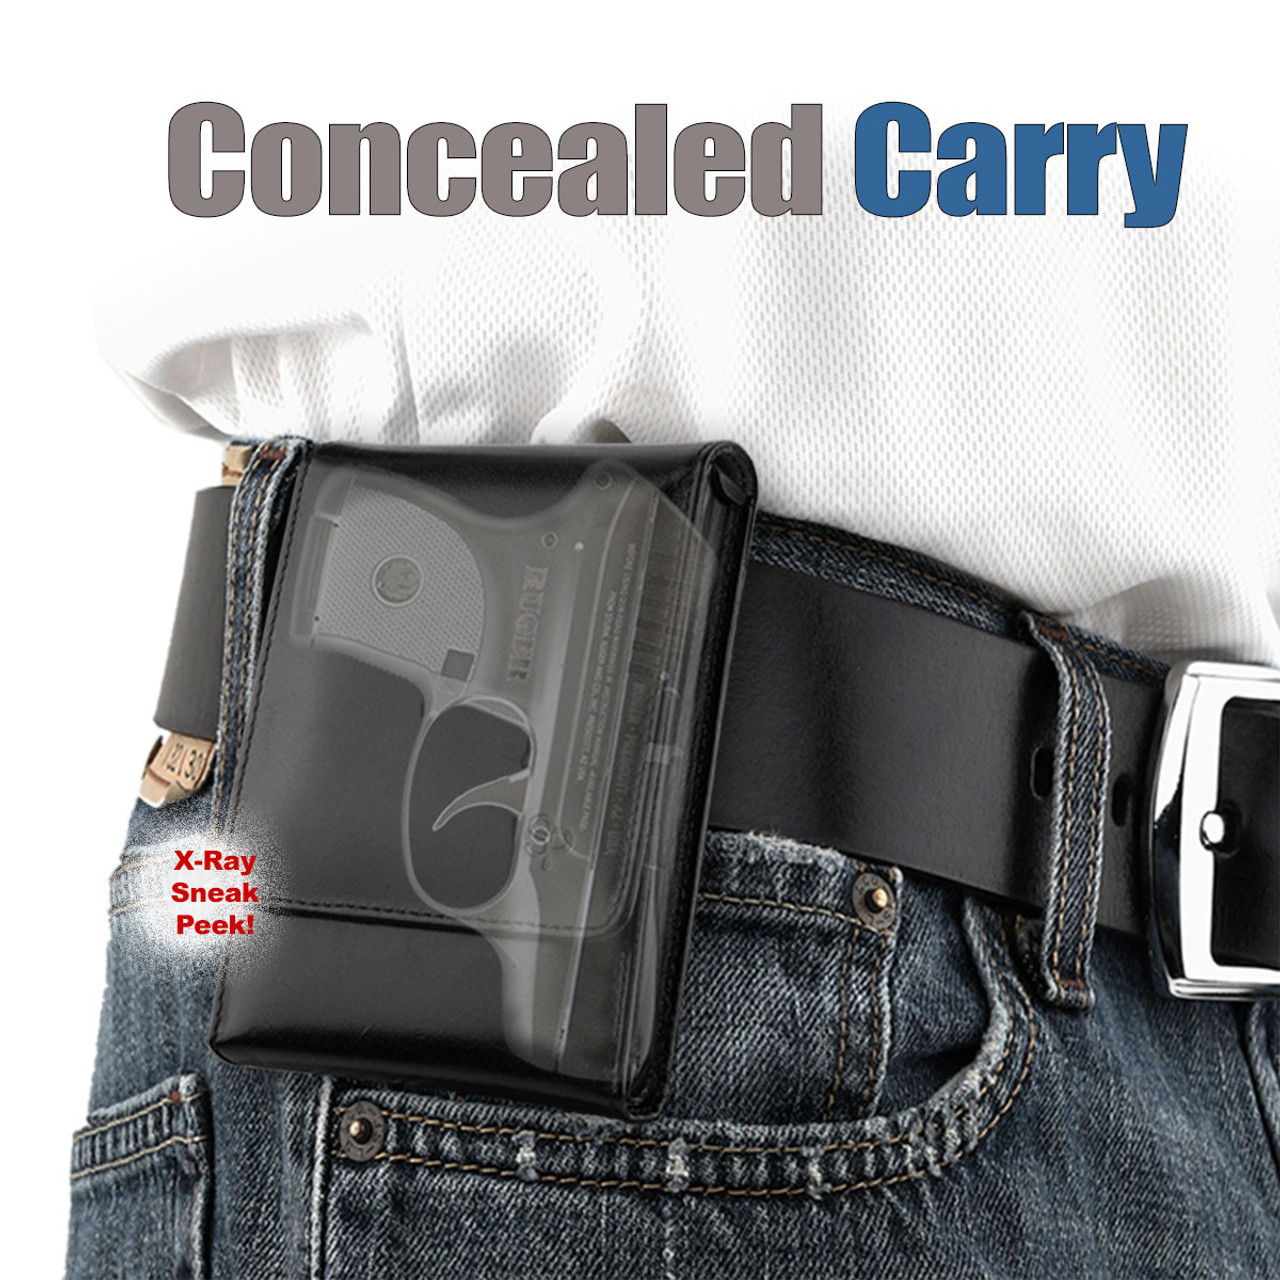 FNS-9C Concealed Carry Holster (Belt Loop)